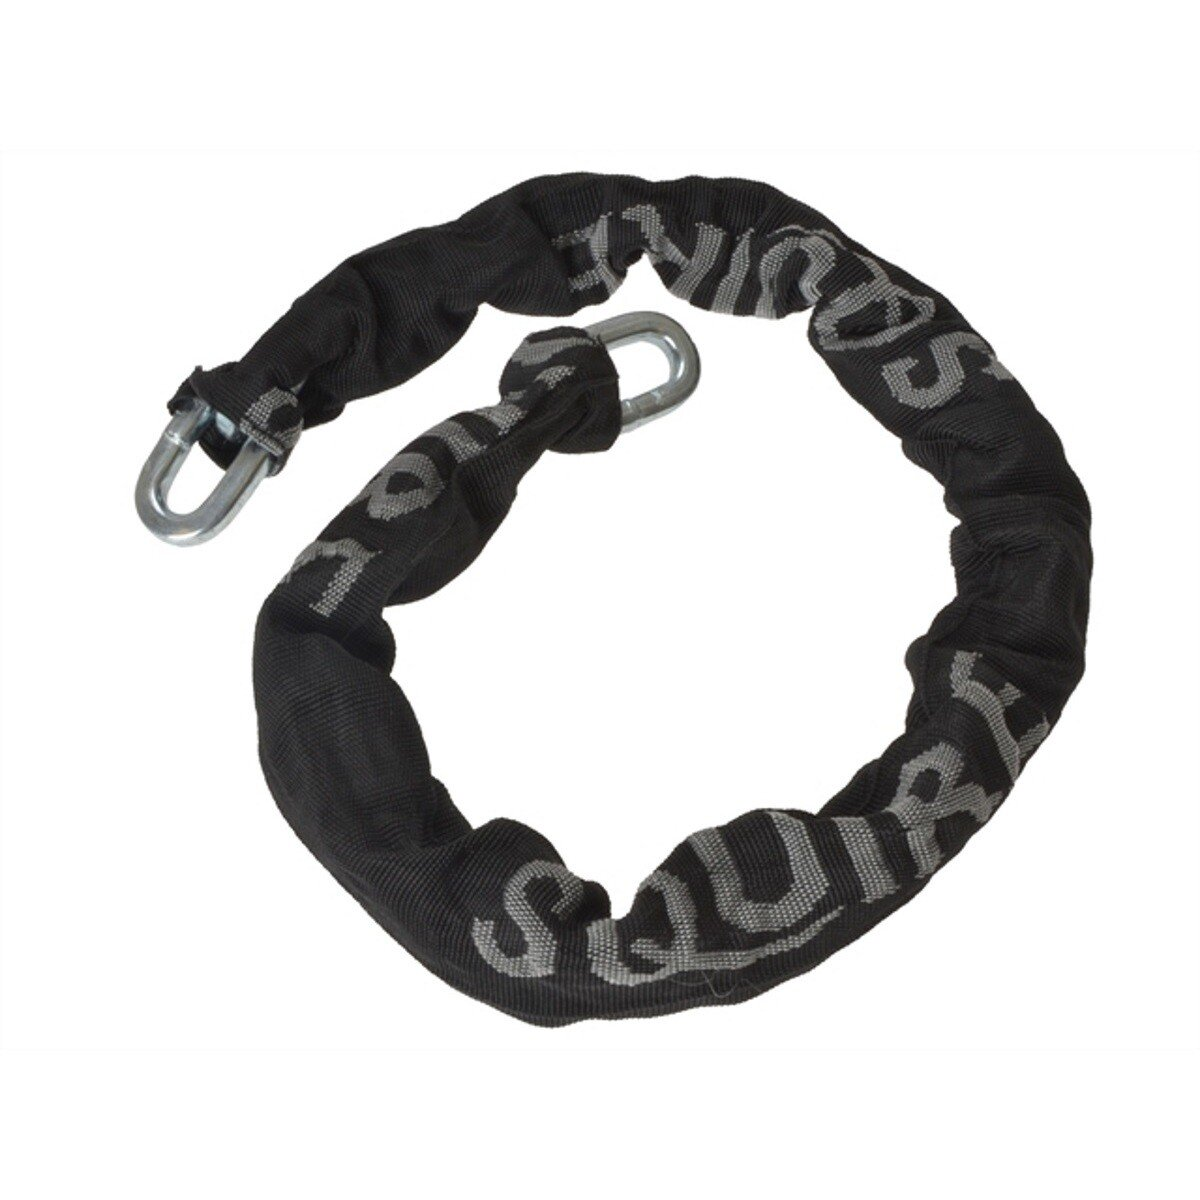 Squire J3 Round Section Hard Boron Alloy Chain 900 x 8mm HSQJ3